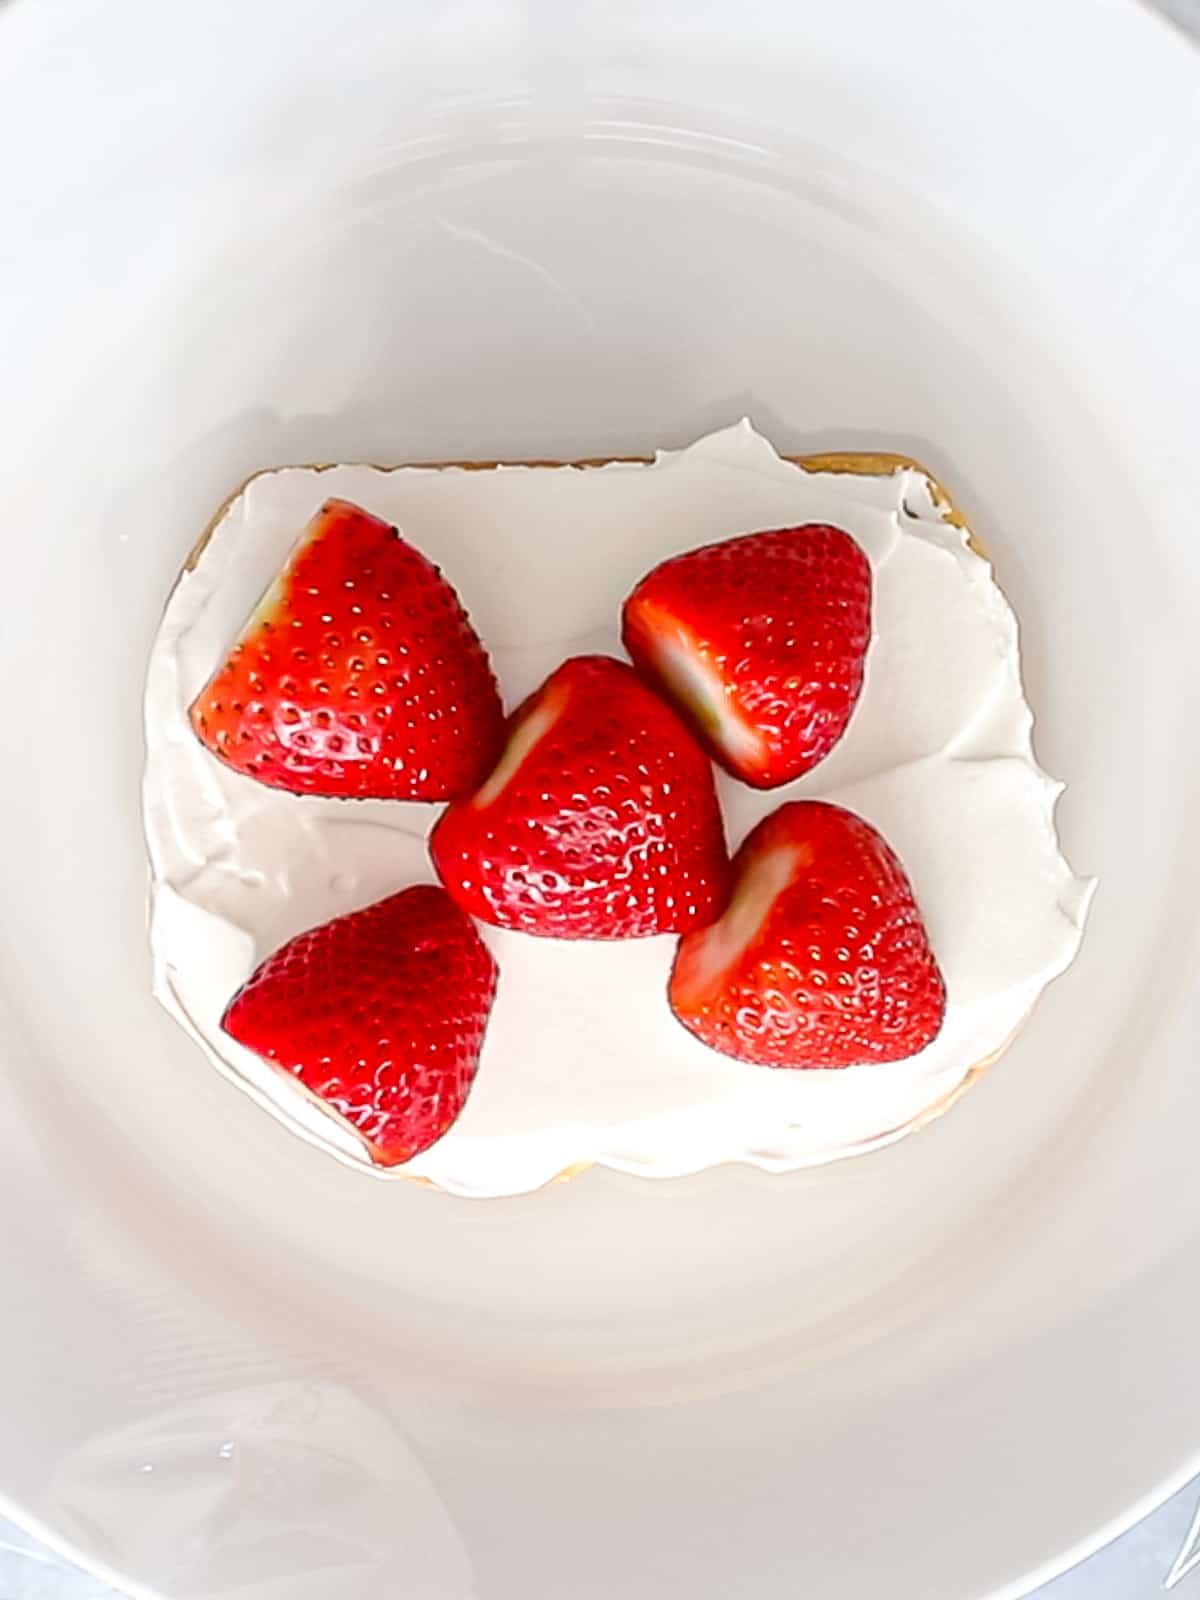 Red strawberries laid on top of whipped cream and Japanese shokupan or milk bread.